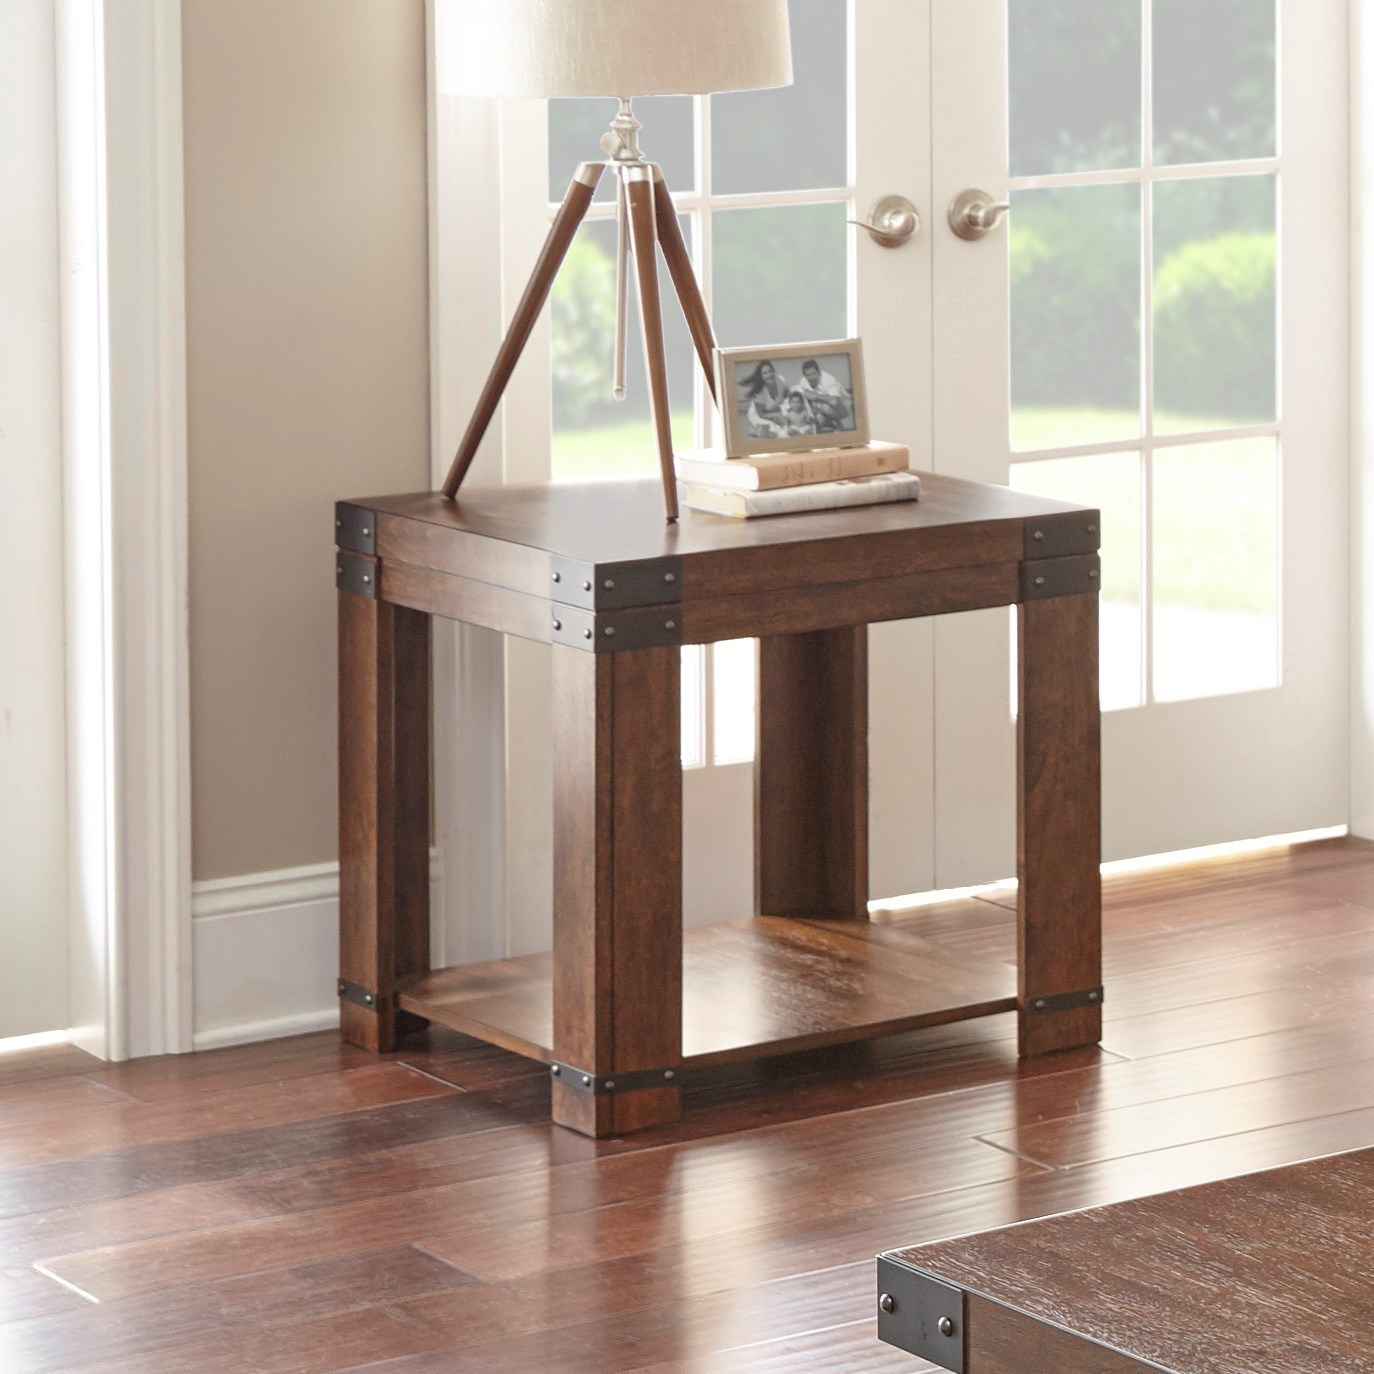 Arusha End Table by Steve Silver at Walker's Furniture